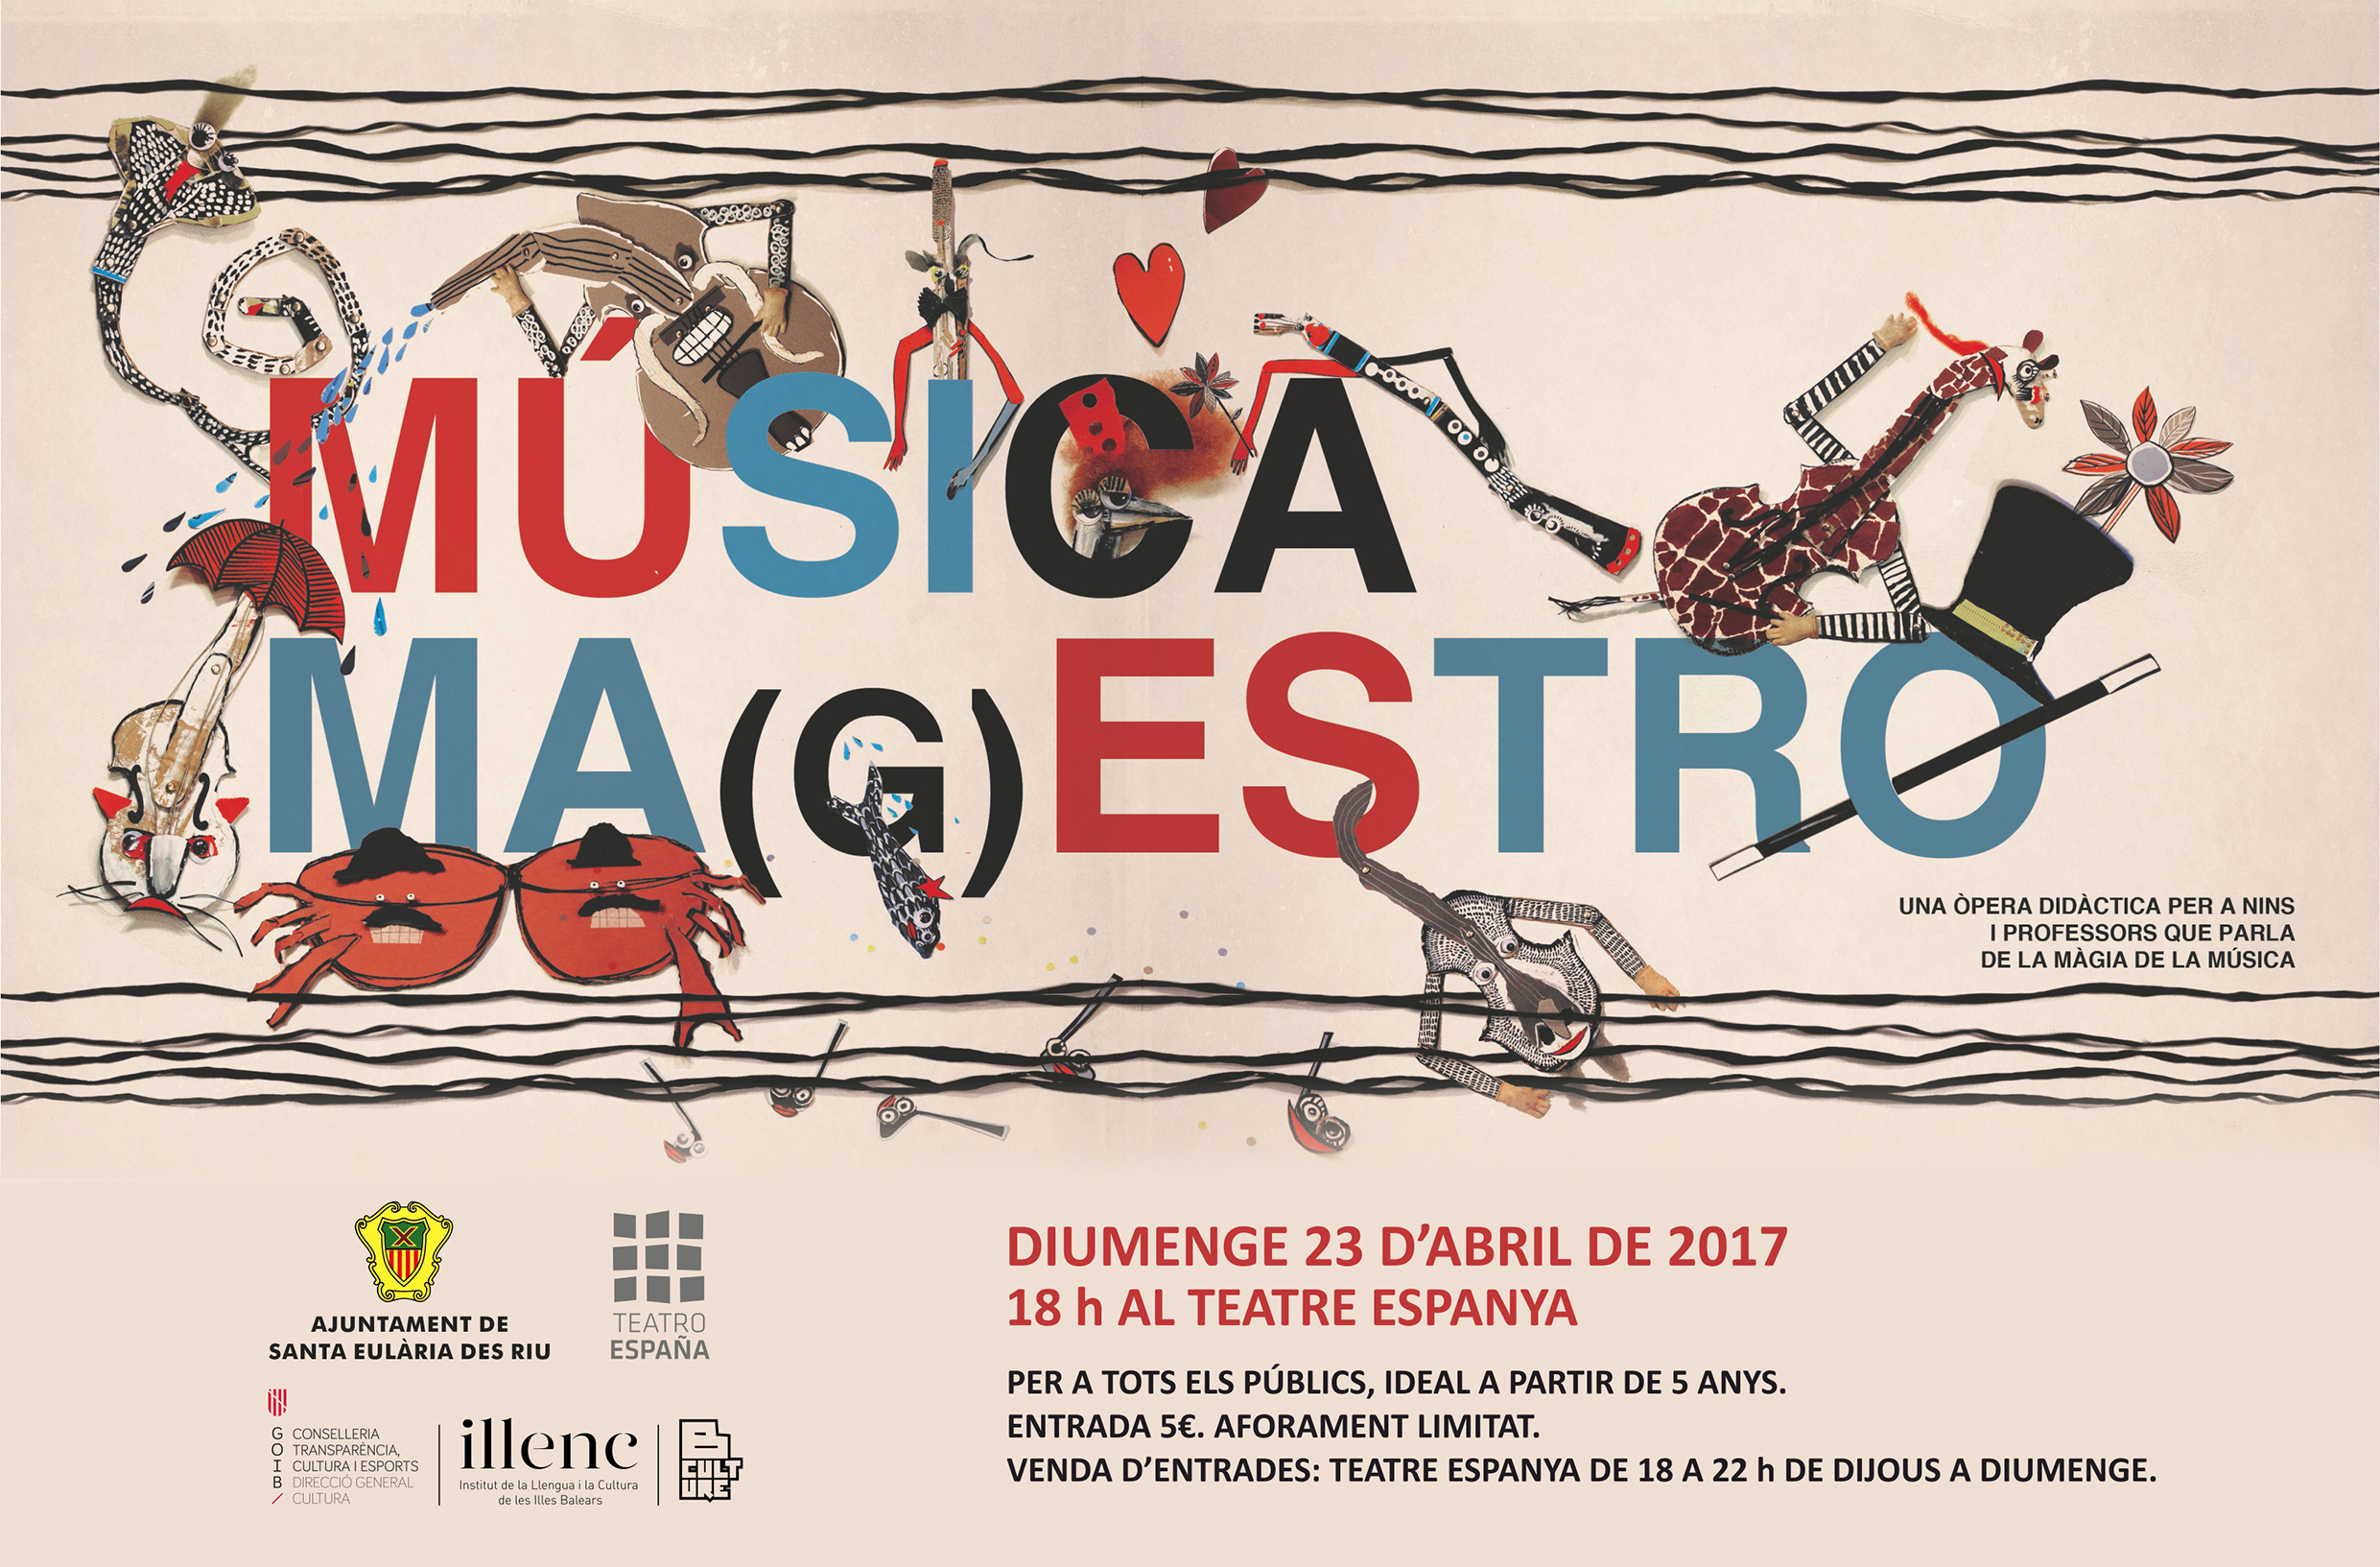 CARTELL MUSICA MAGESTRO 23 4 2017 TALENT IB